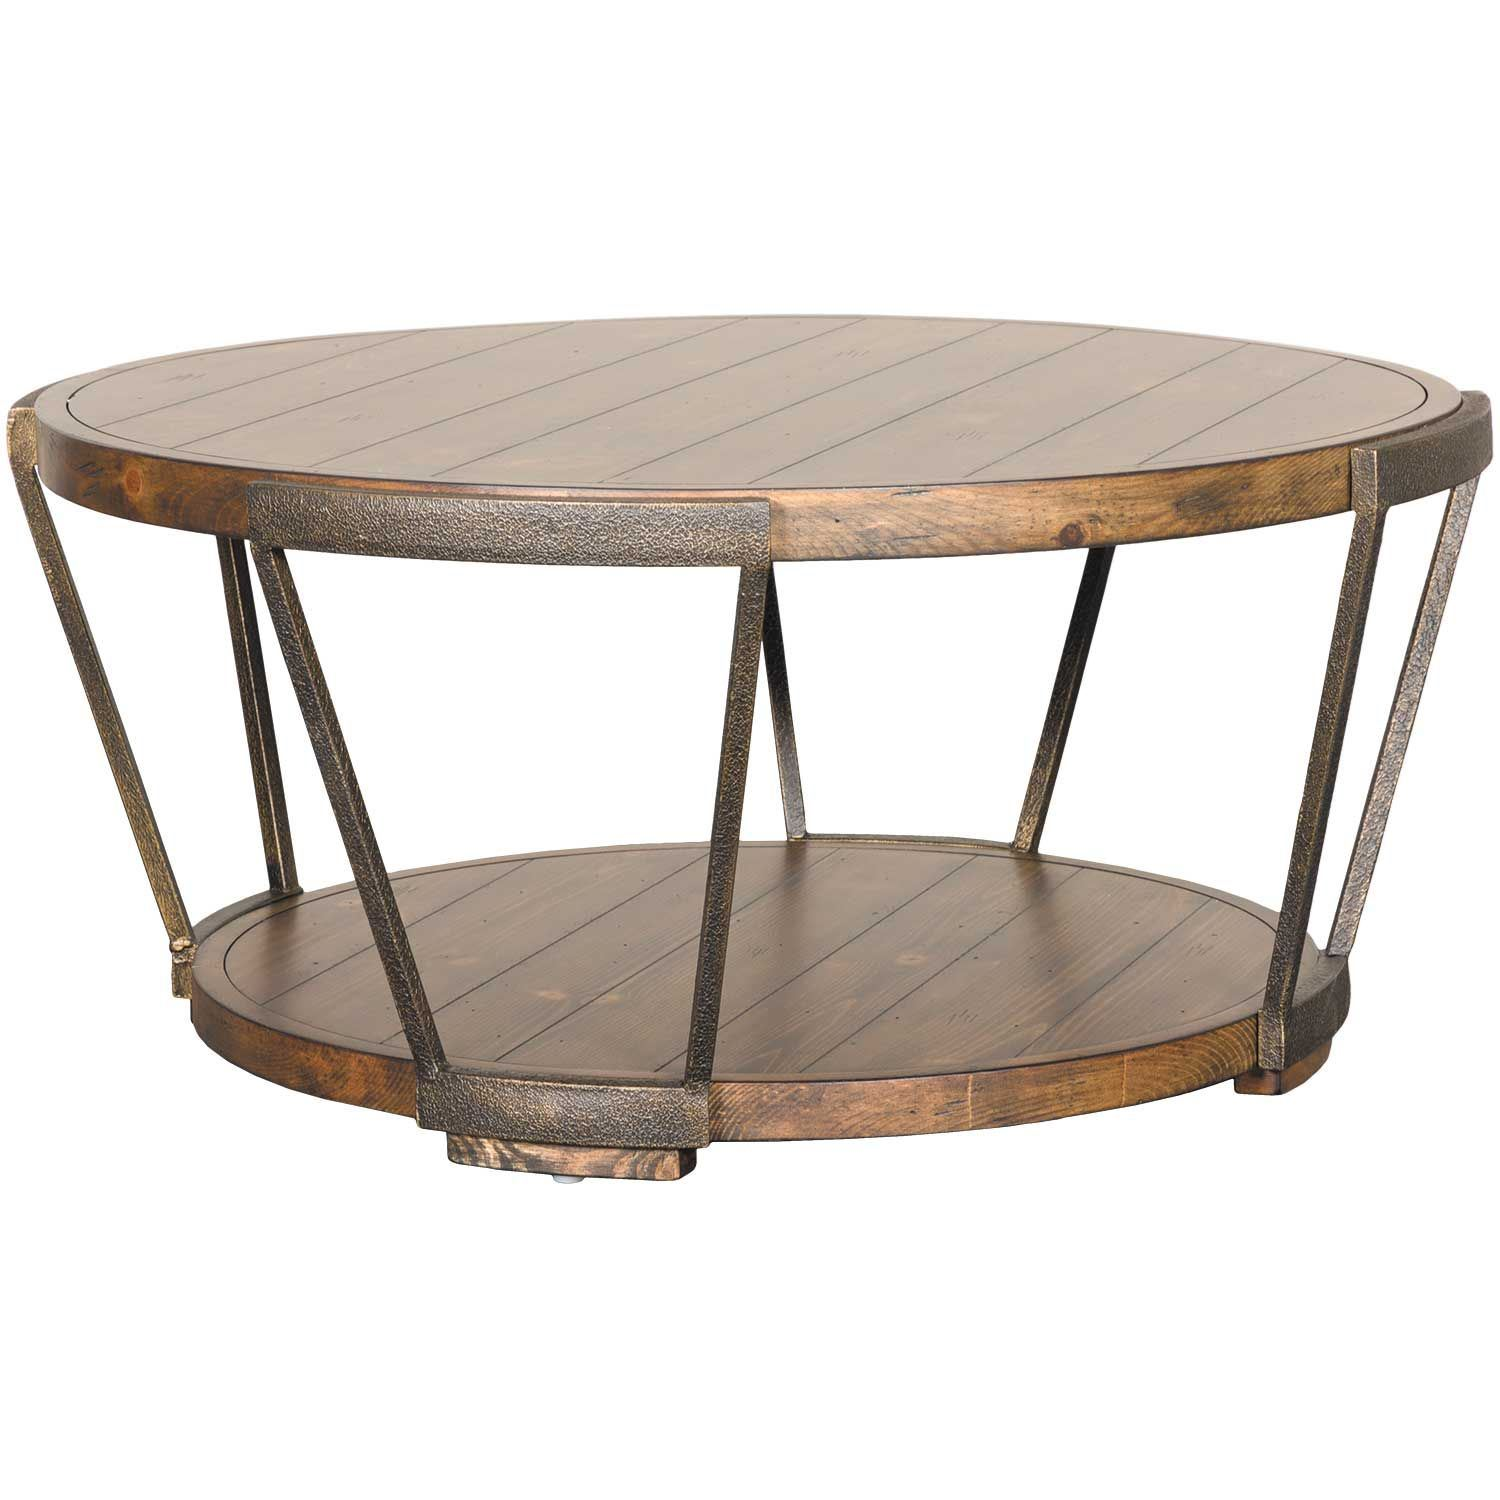 Magnussen Home Cranfill Round Cocktail Table: Yukon Round Cocktail Table